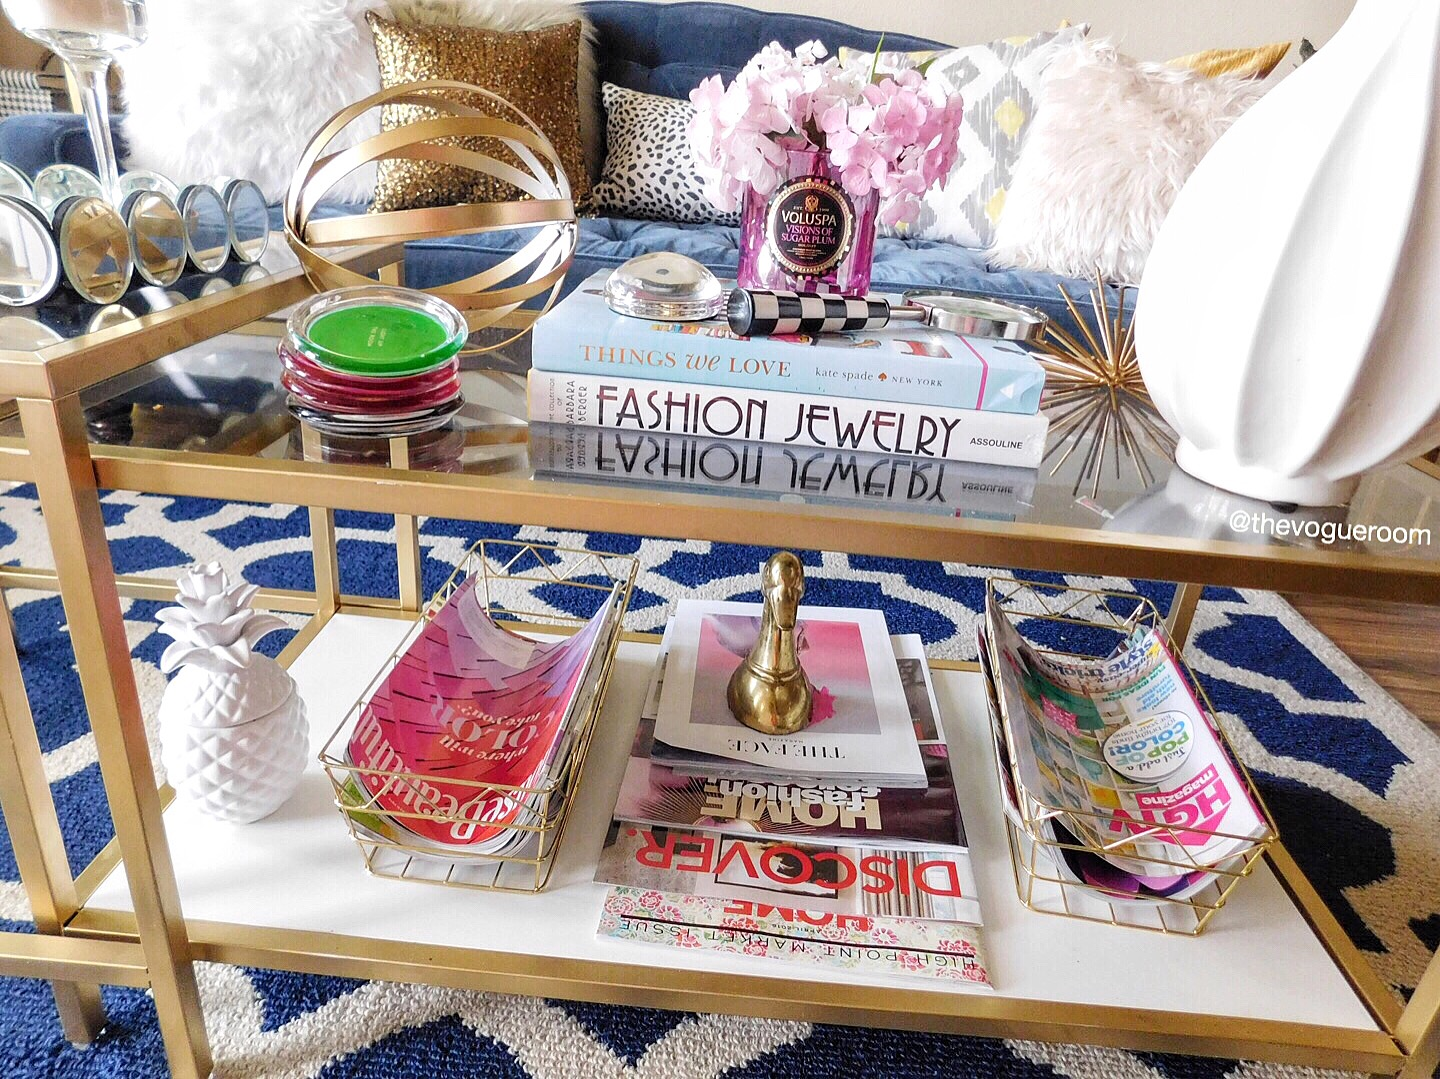 This is how I accessorize my living room coffee table. I'm always adding and changing things, but I think this coffee table speaks to my style and personality. It's so glam and I LOVE IT!